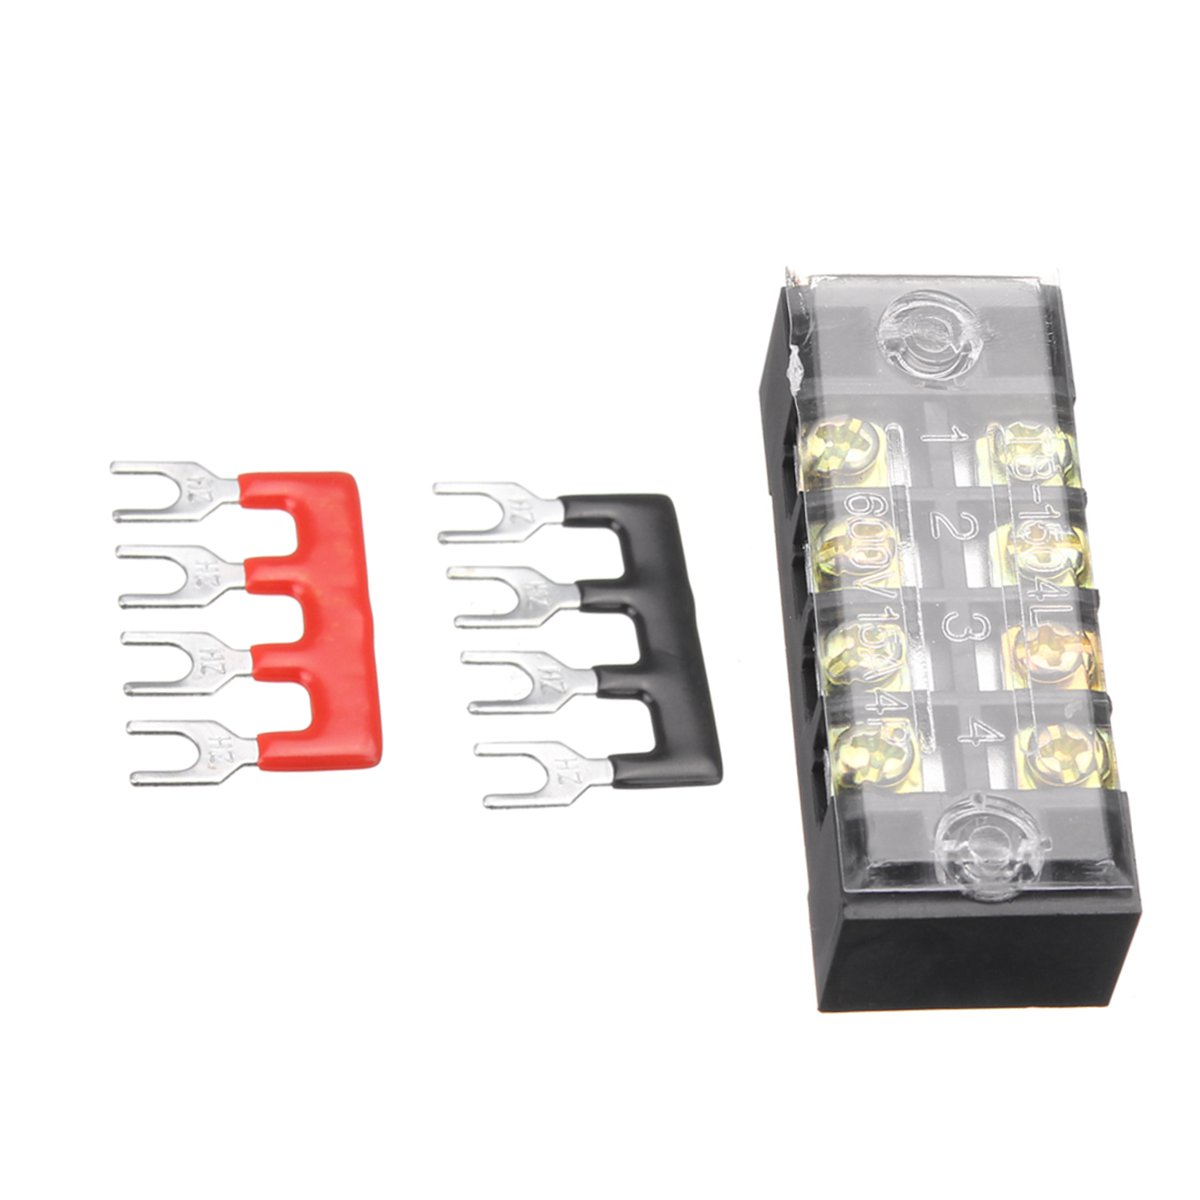 600V 15A Dual Rows 4 Position Screw Terminal Strip Red/Black Pre Insulated Terminal Block Strip